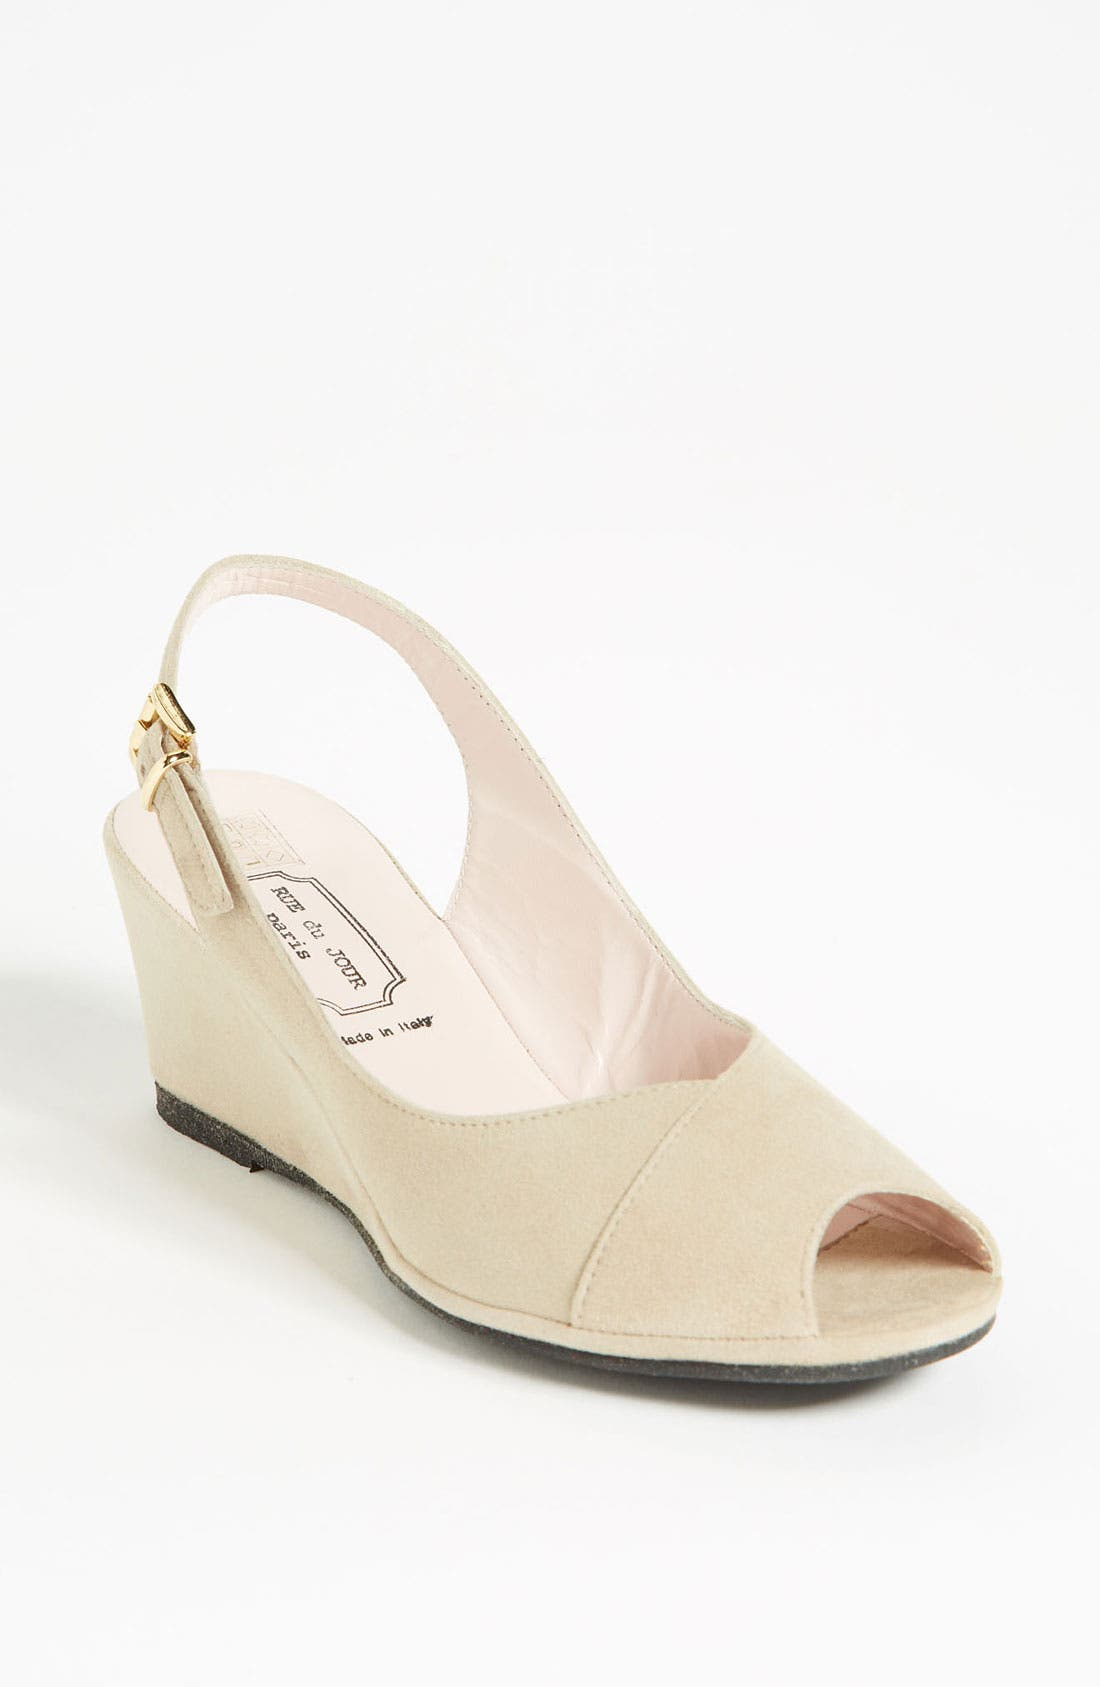 Alternate Image 1 Selected - Rue du Jour 'Jay' Pump